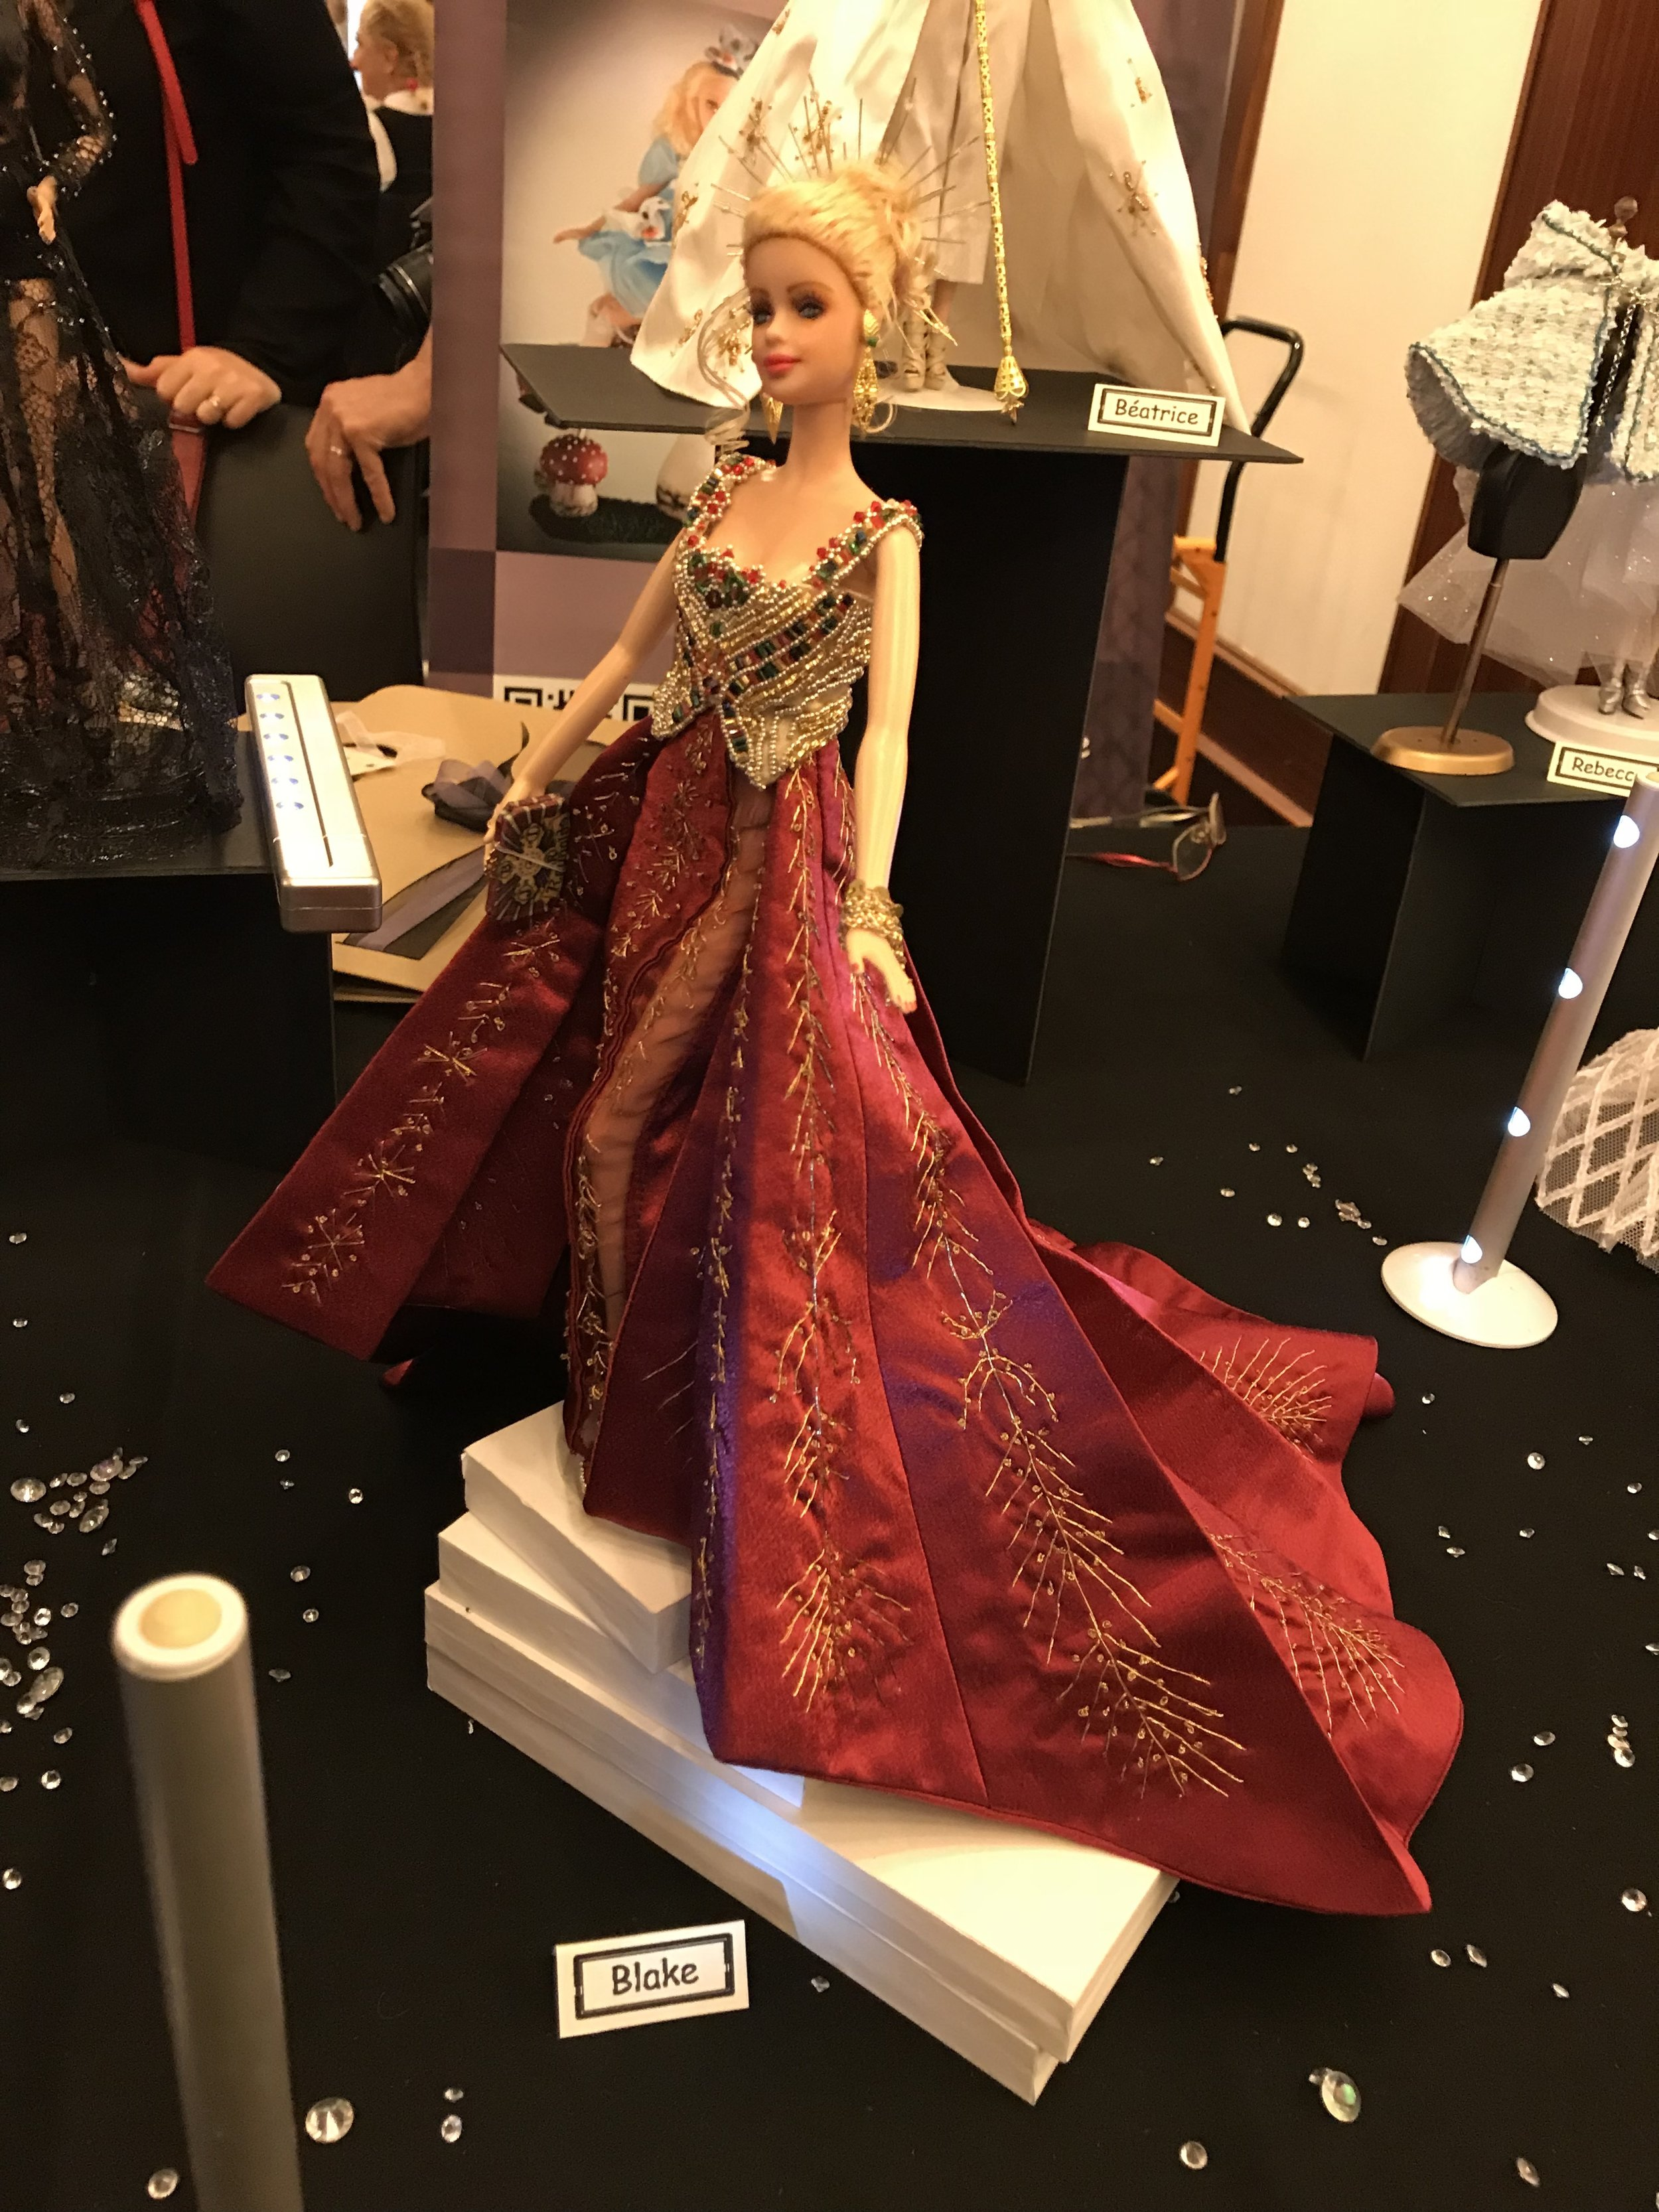 Corinne made an awesome replica of Blake Lively's dress from this year's Met Gala